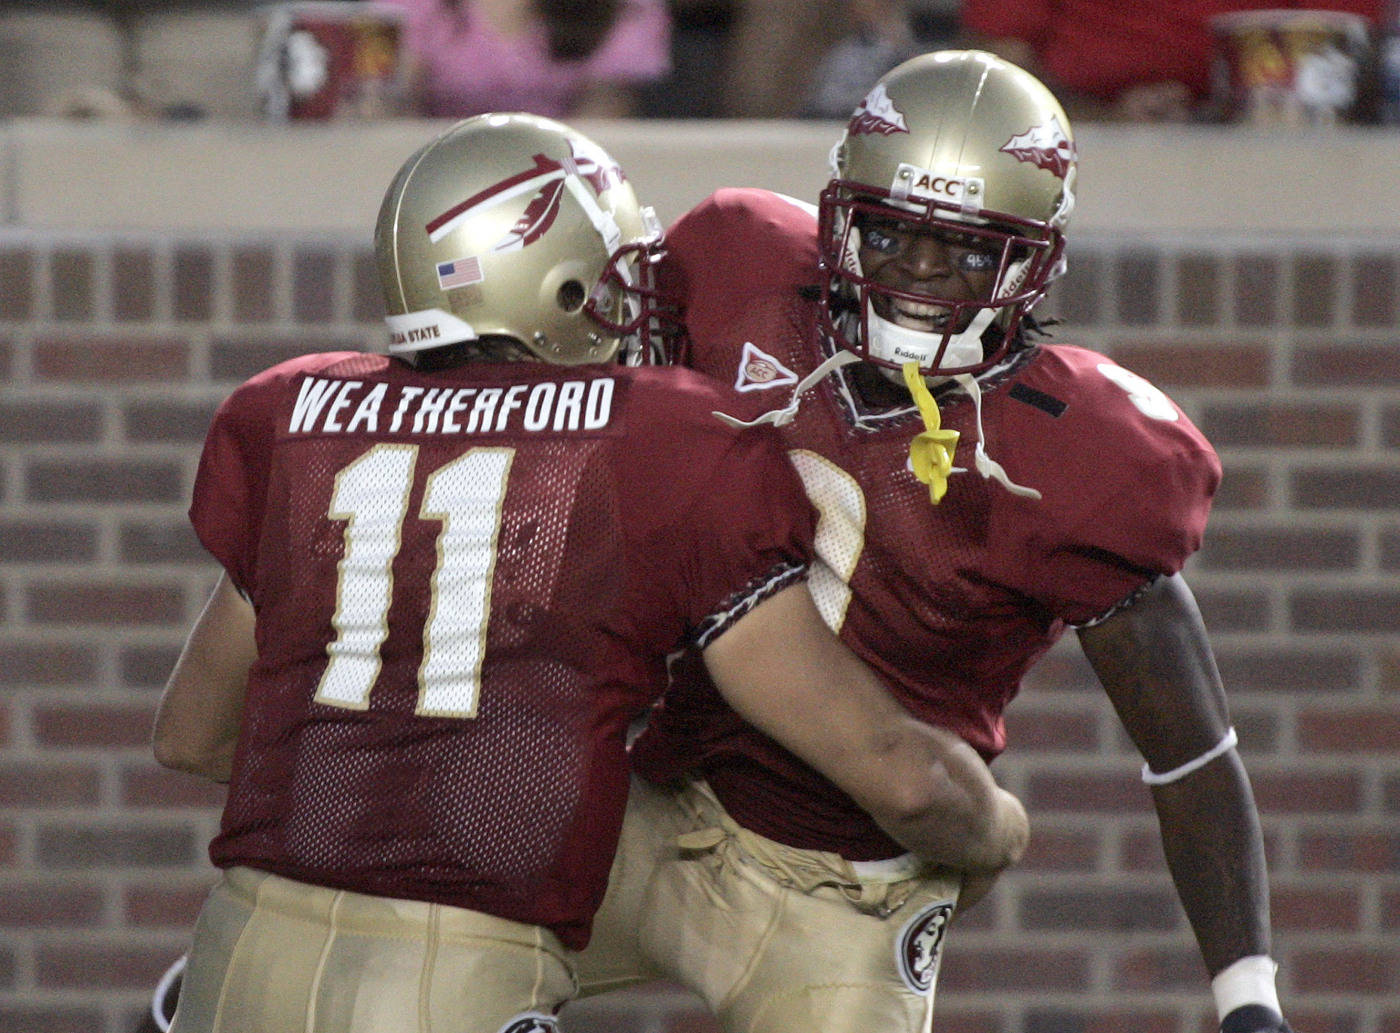 Florida State receiver Richard Goodman, right, is congratulated by quarterback Drew Weatherford after catching a third-quarter touchdown pass from Weatherford in a football game against UAB, Saturday, Sept. 8, 2007, in Tallahassee, Fla. Florida State won 34-24. (AP Photo/Phil Coale)